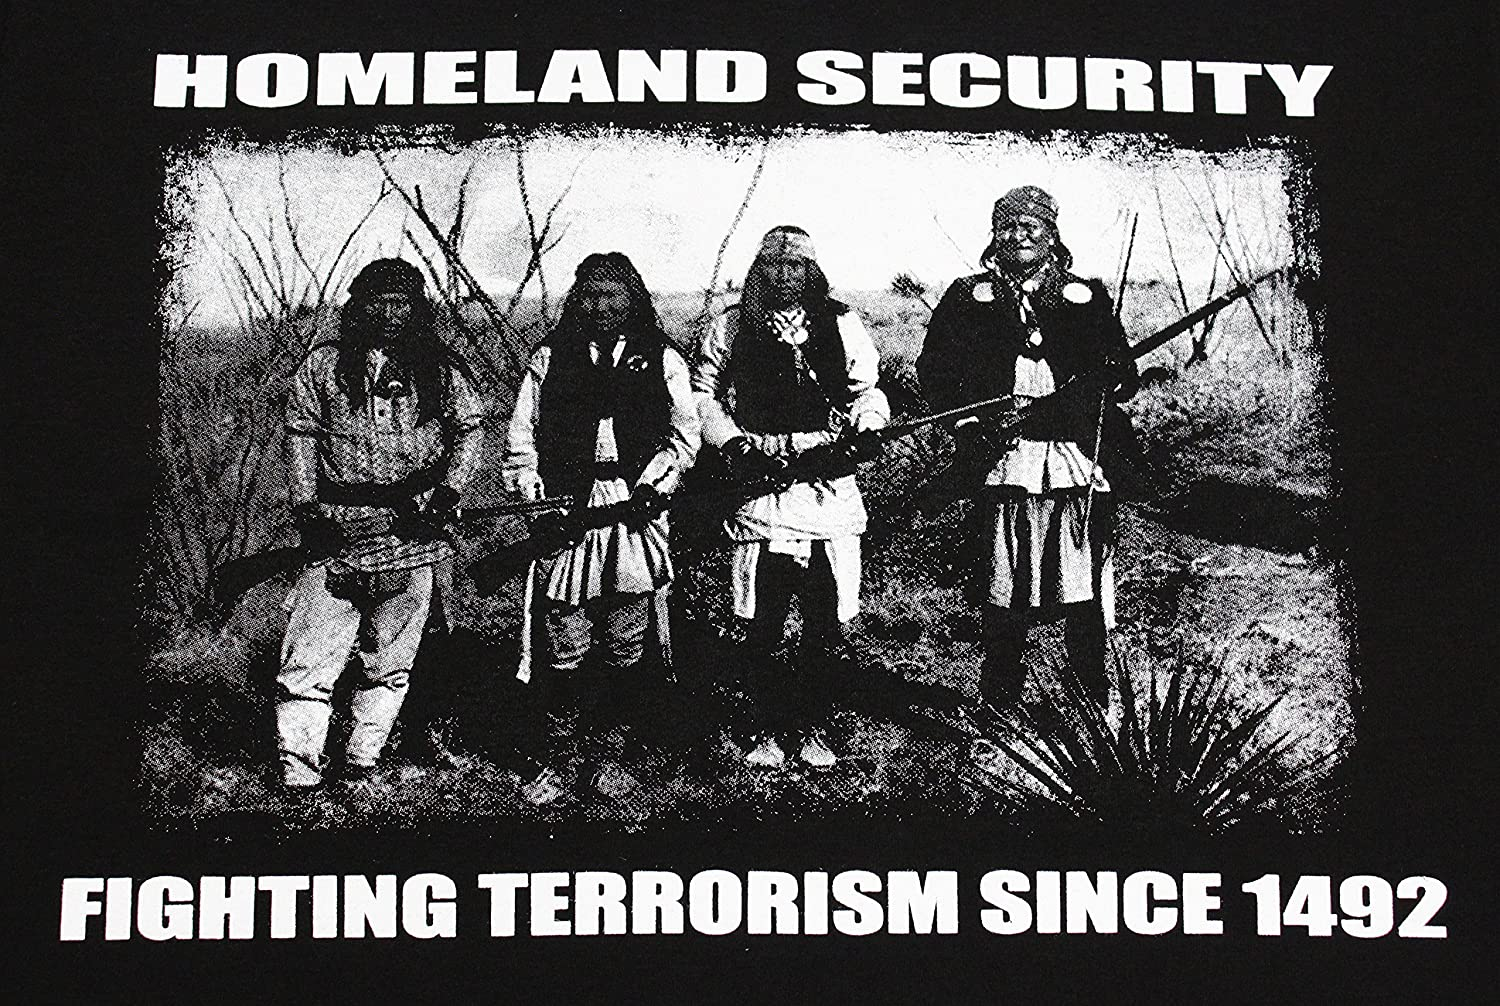 Homeland Security: Fighting Terrorism Since 1492.